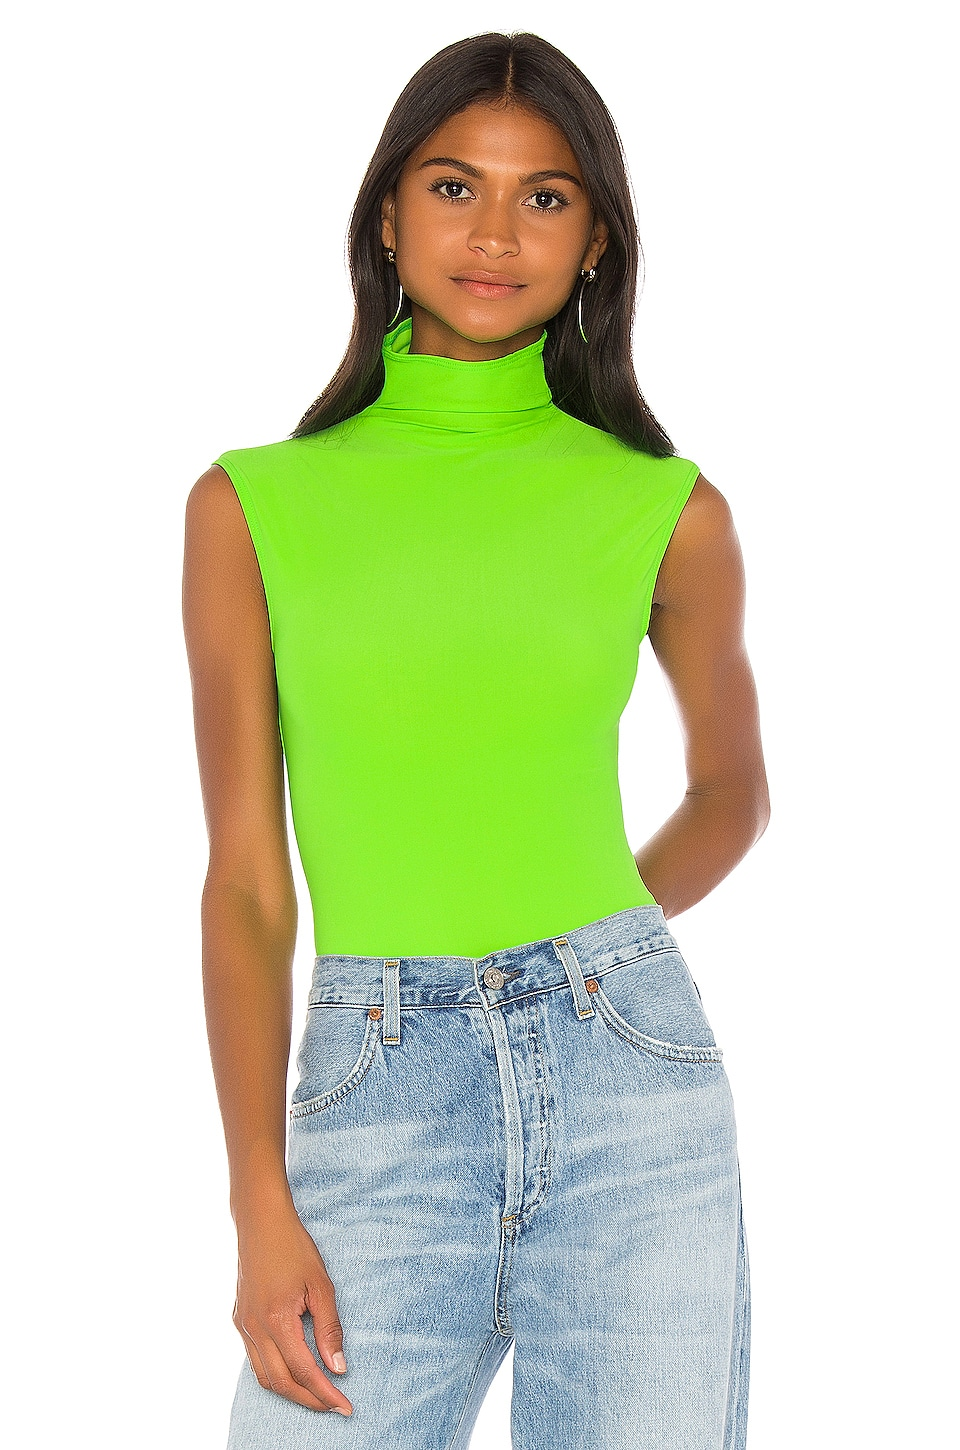 ALIX NYC Denton Bodysuit in Electric Green